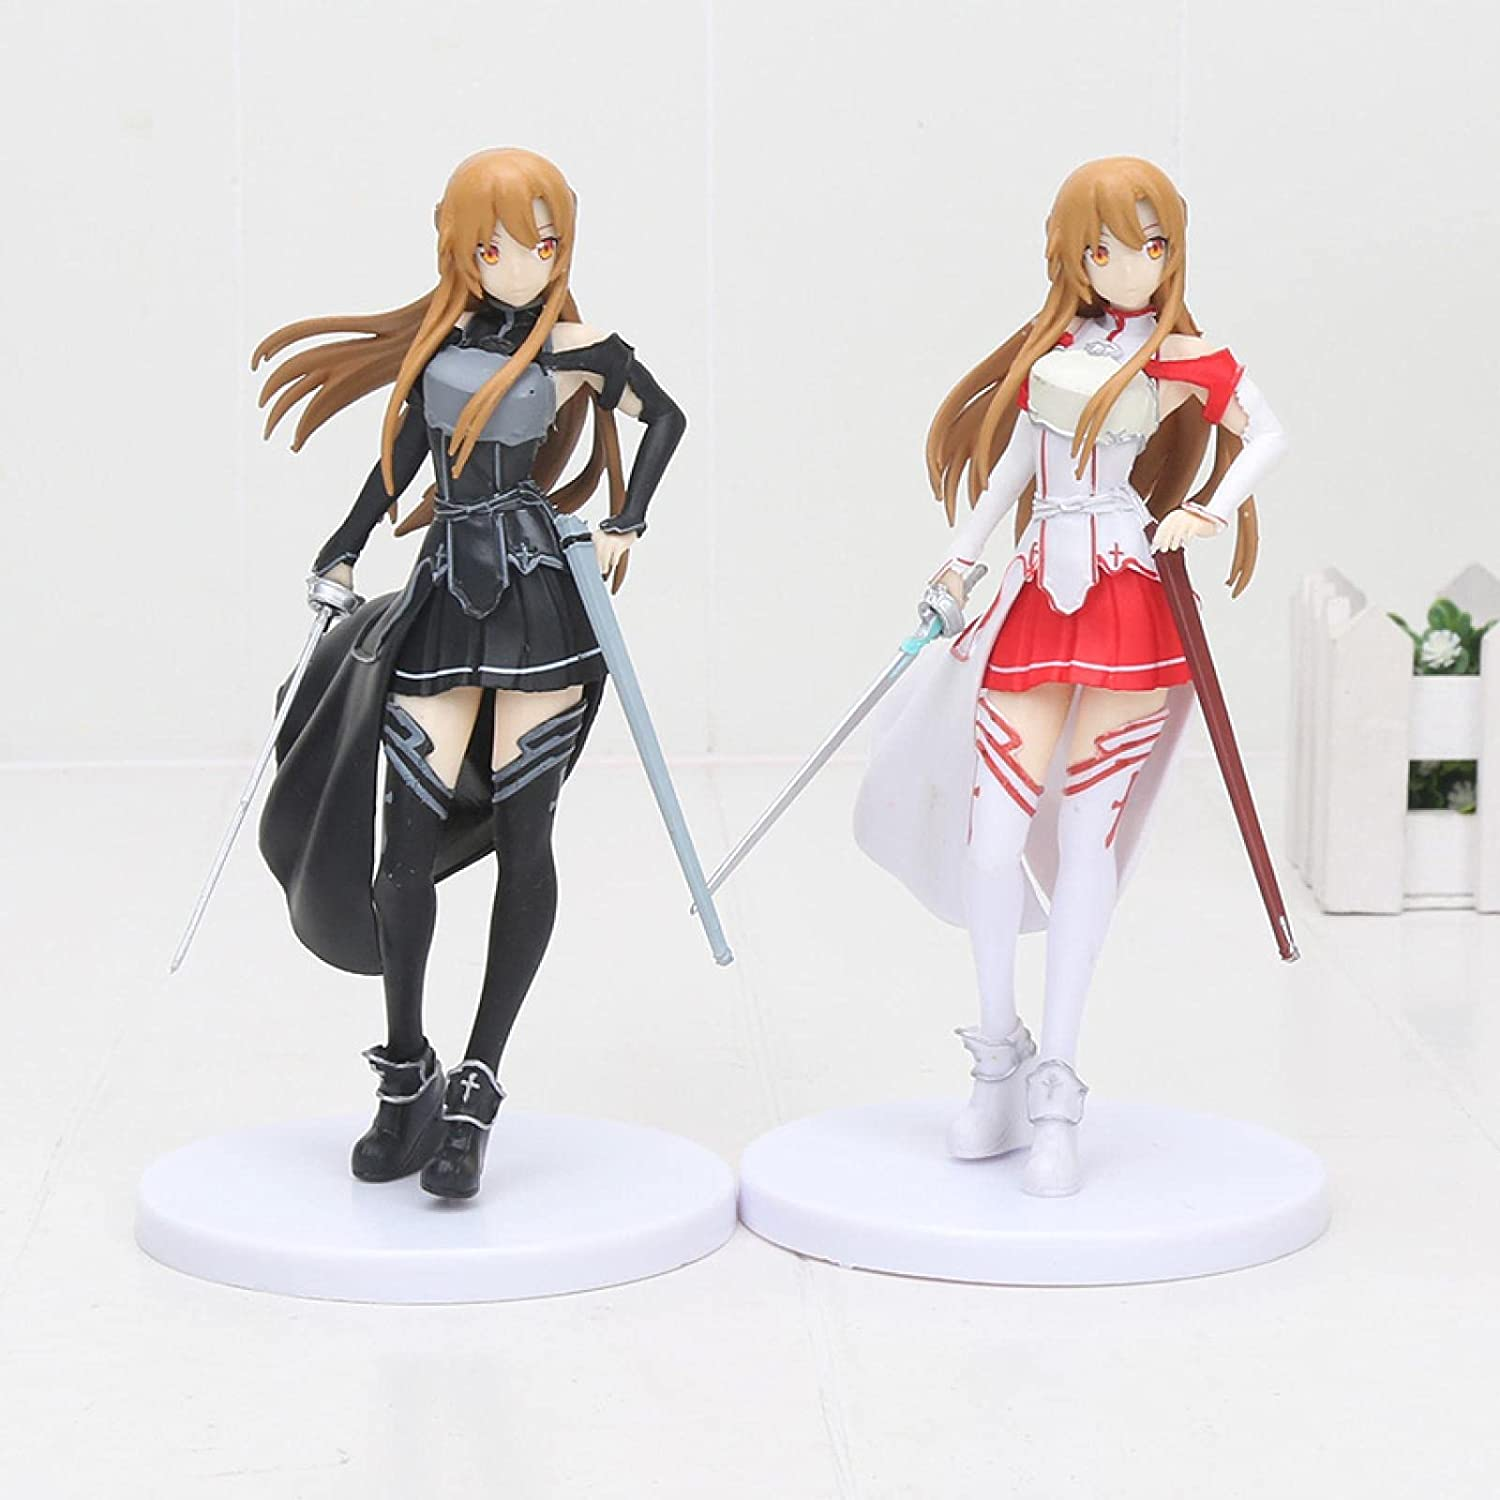 2Pcs Anime Figures Philadelphia Mall Sq Sword Cheap mail order sales Art Online Collection Action F Asuna